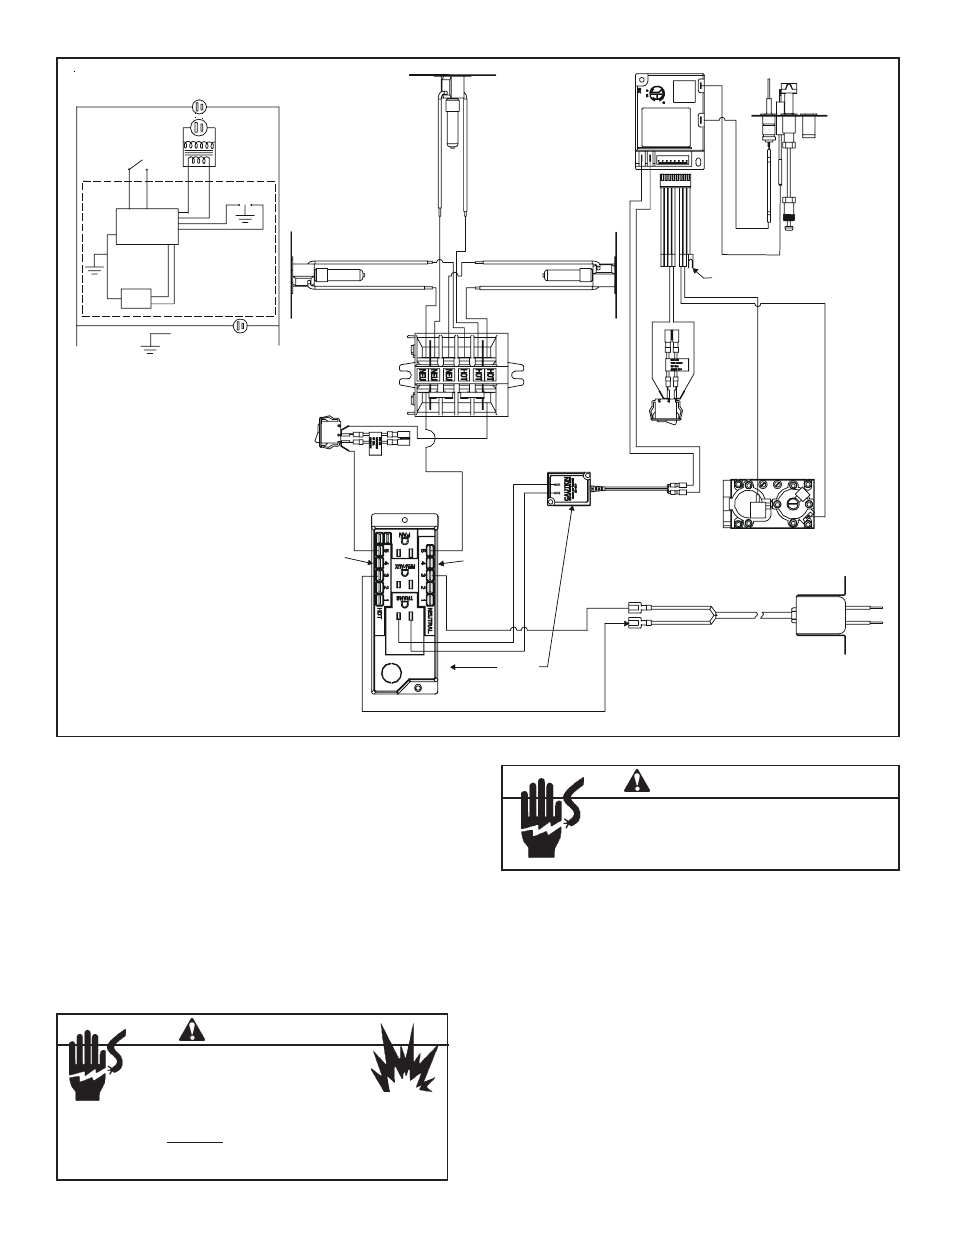 Explosive Wiring Diagram Wiring Diagram